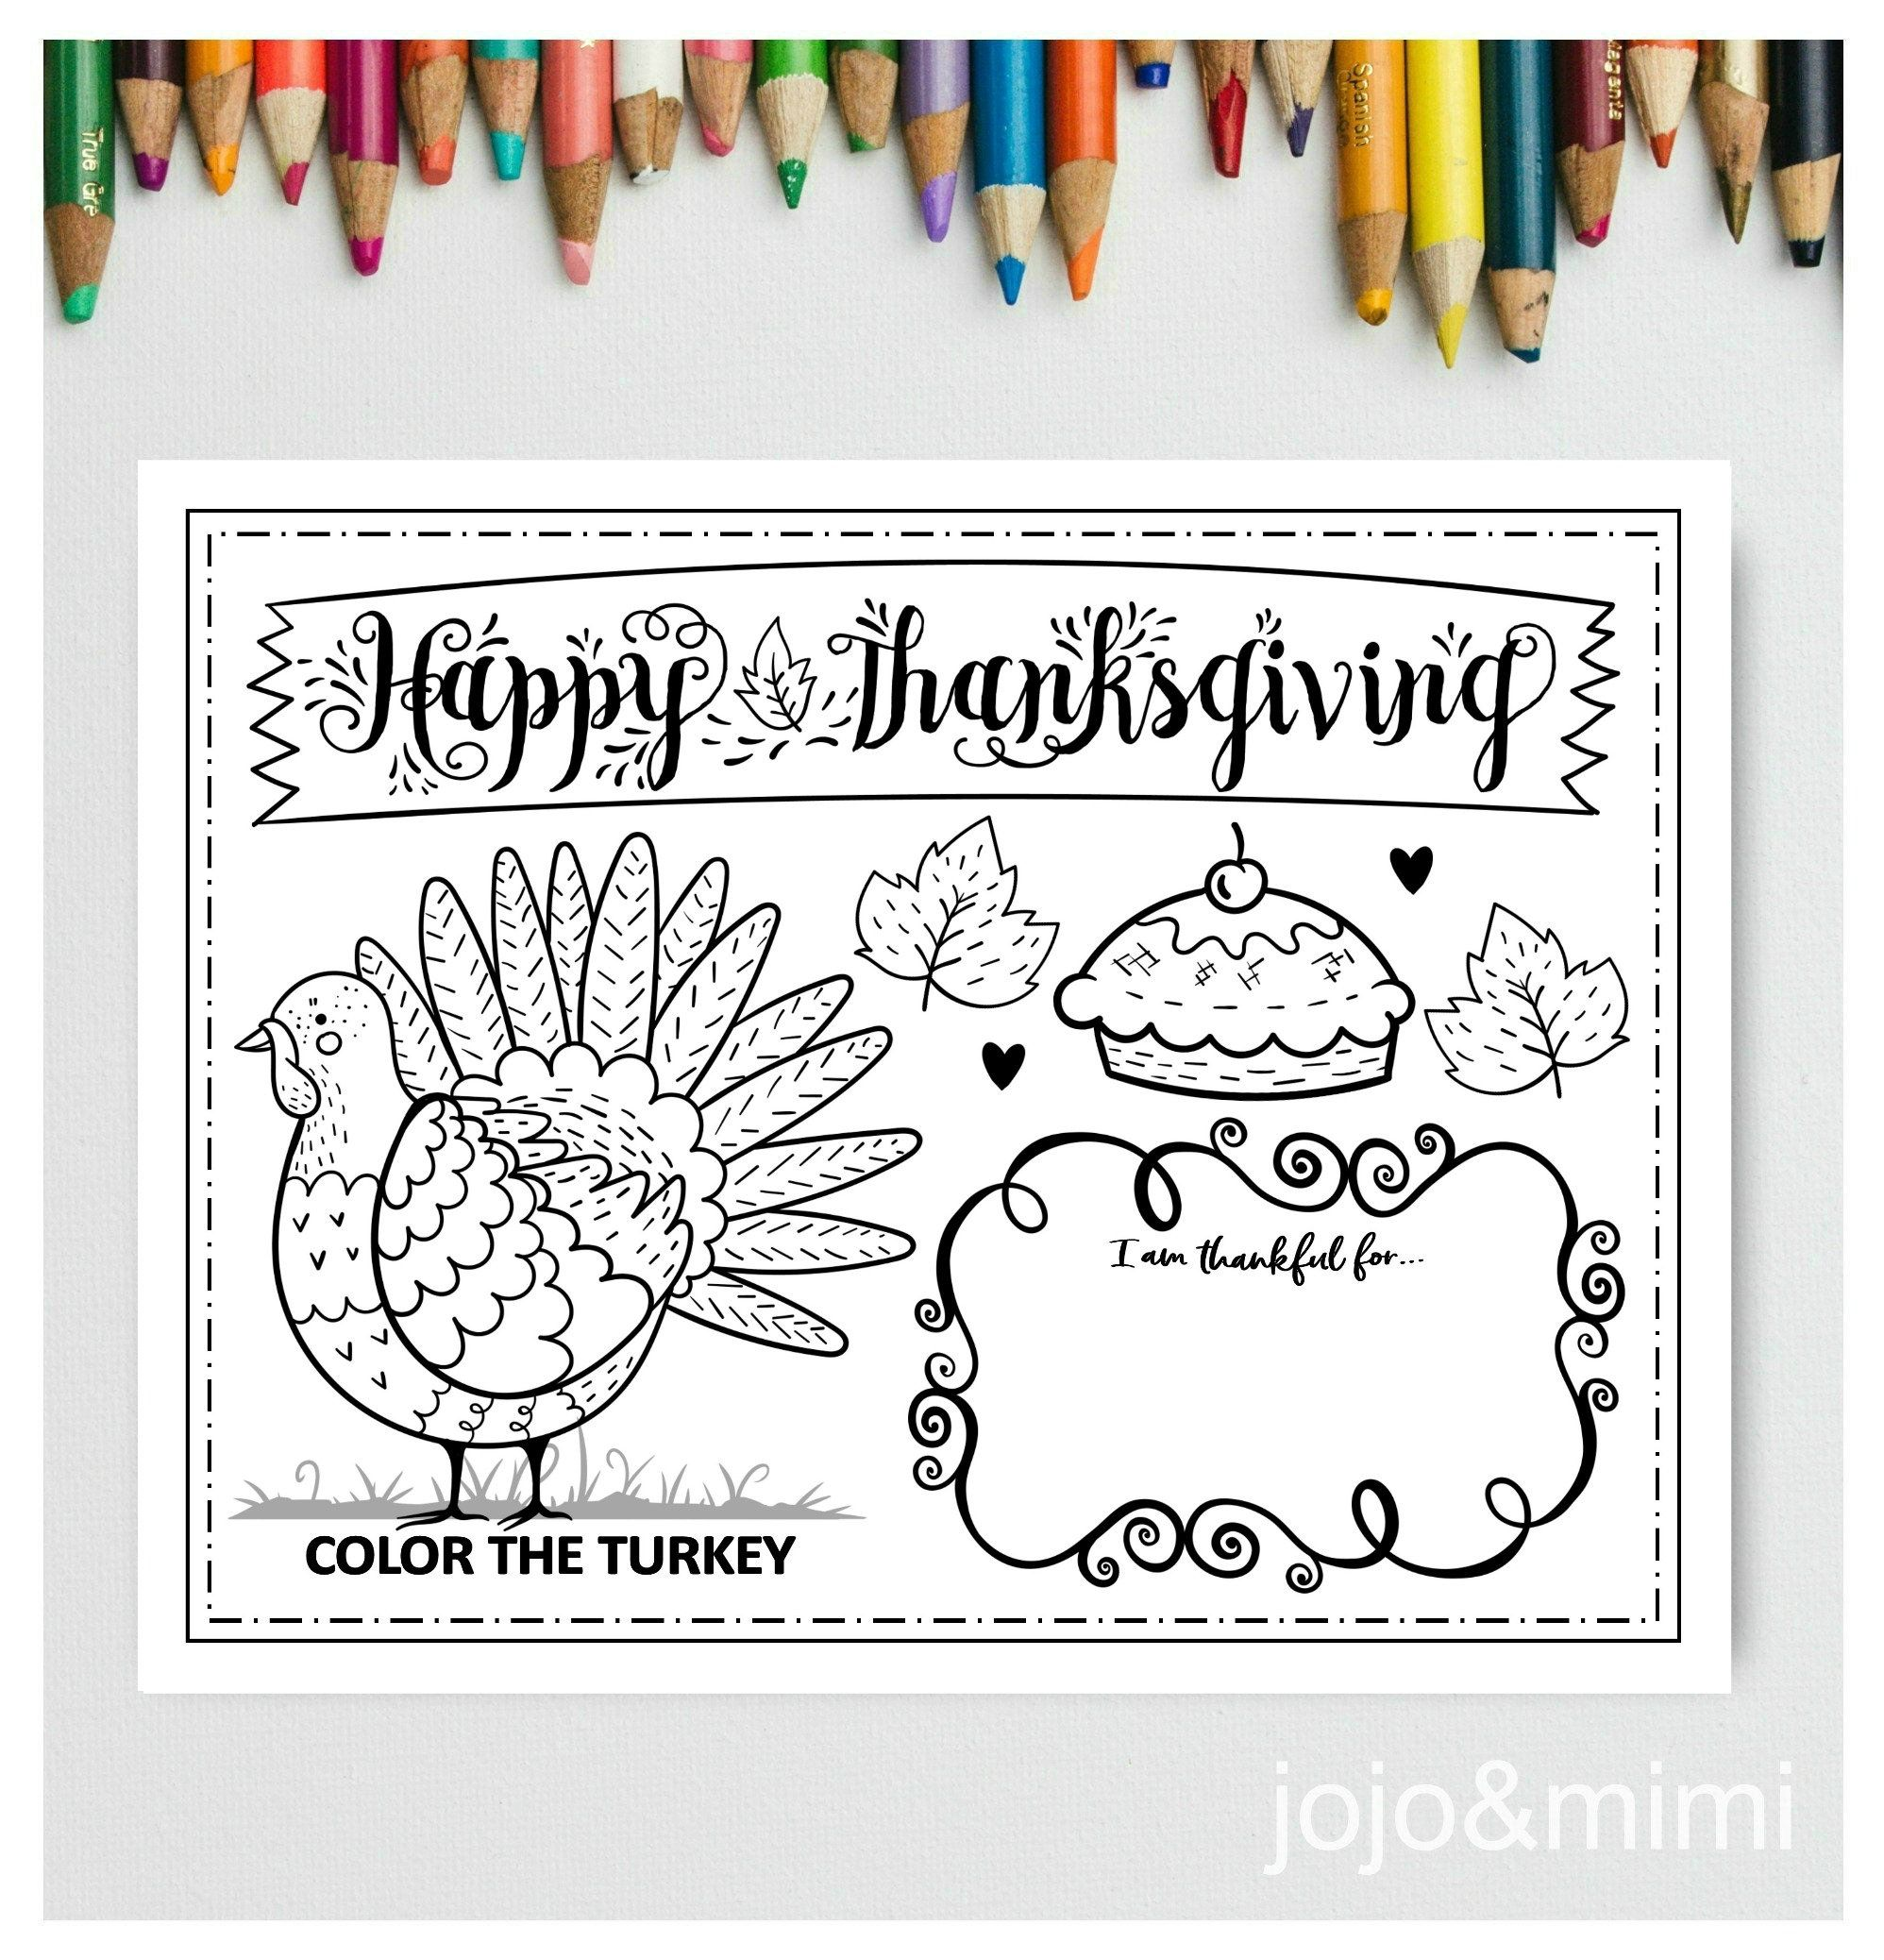 Thanksgiving Printable Placemat Activity Fall Coloring Page Instant Download Happy Thanksgiving Dinner Placemat Turkey Fall Coloring Pages Printable Placemat Thanksgiving Printables